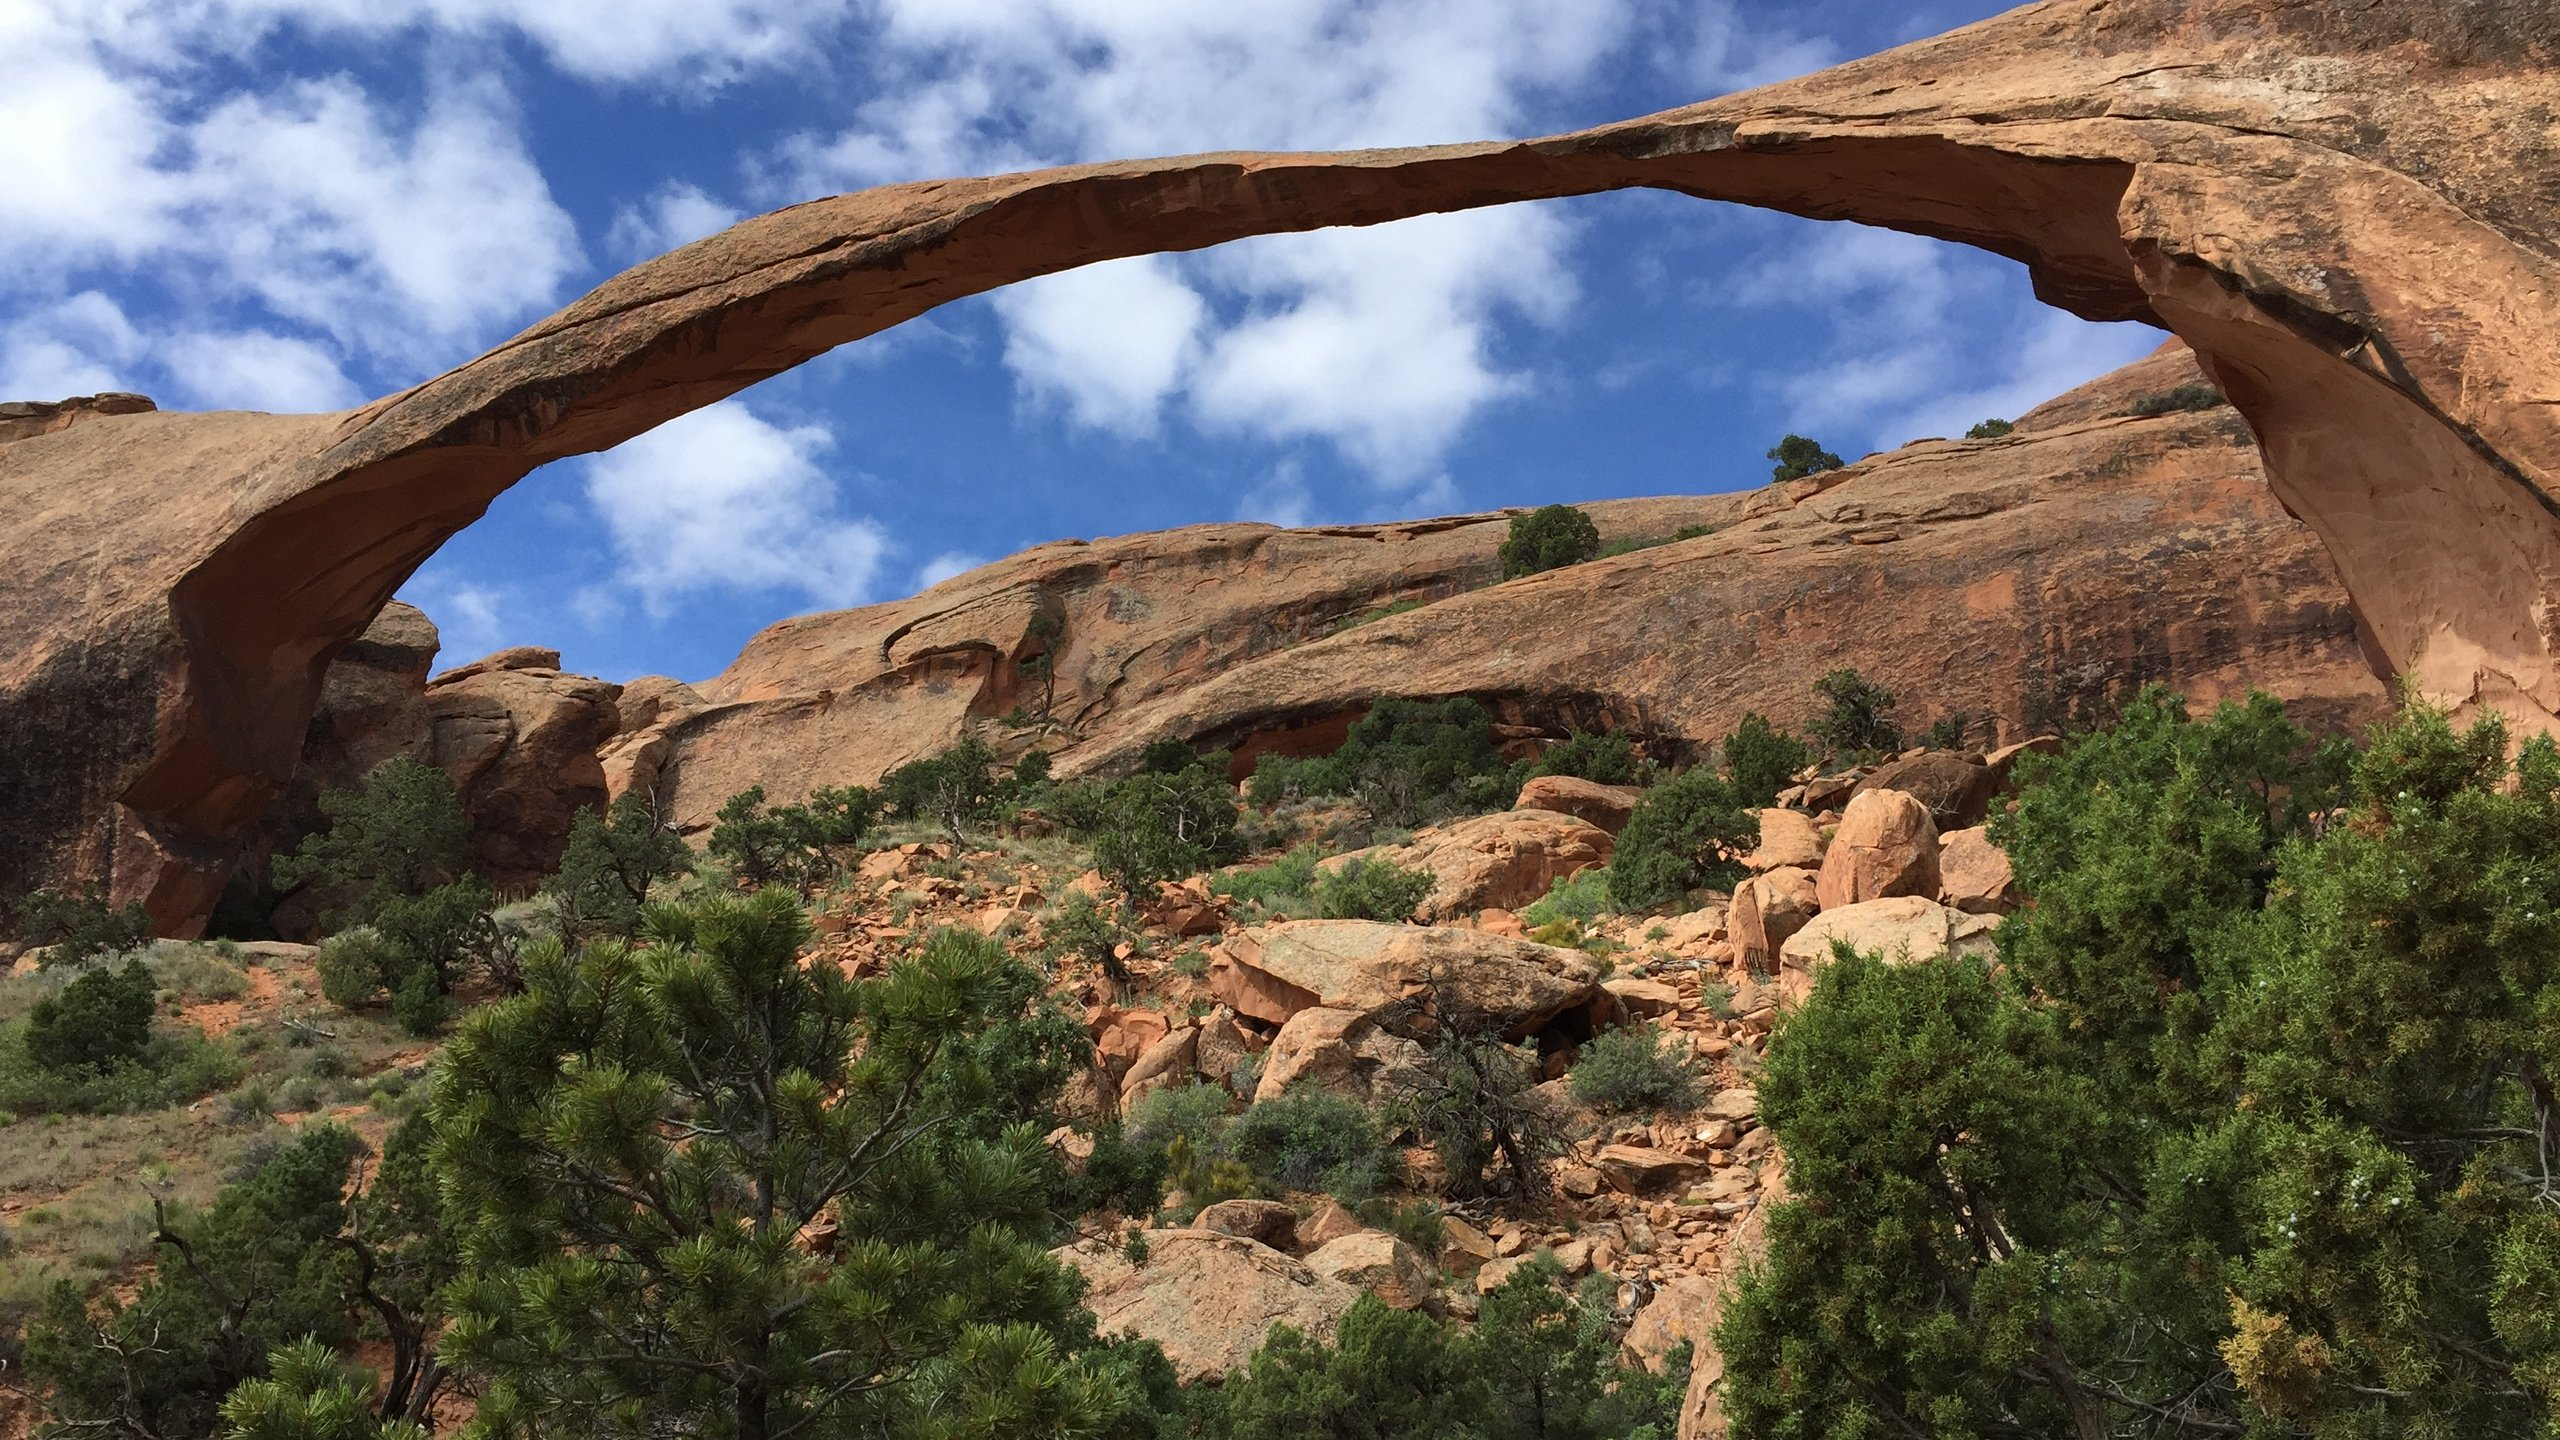 Landscape Arch Devils Garden Arches National Park wallpaper